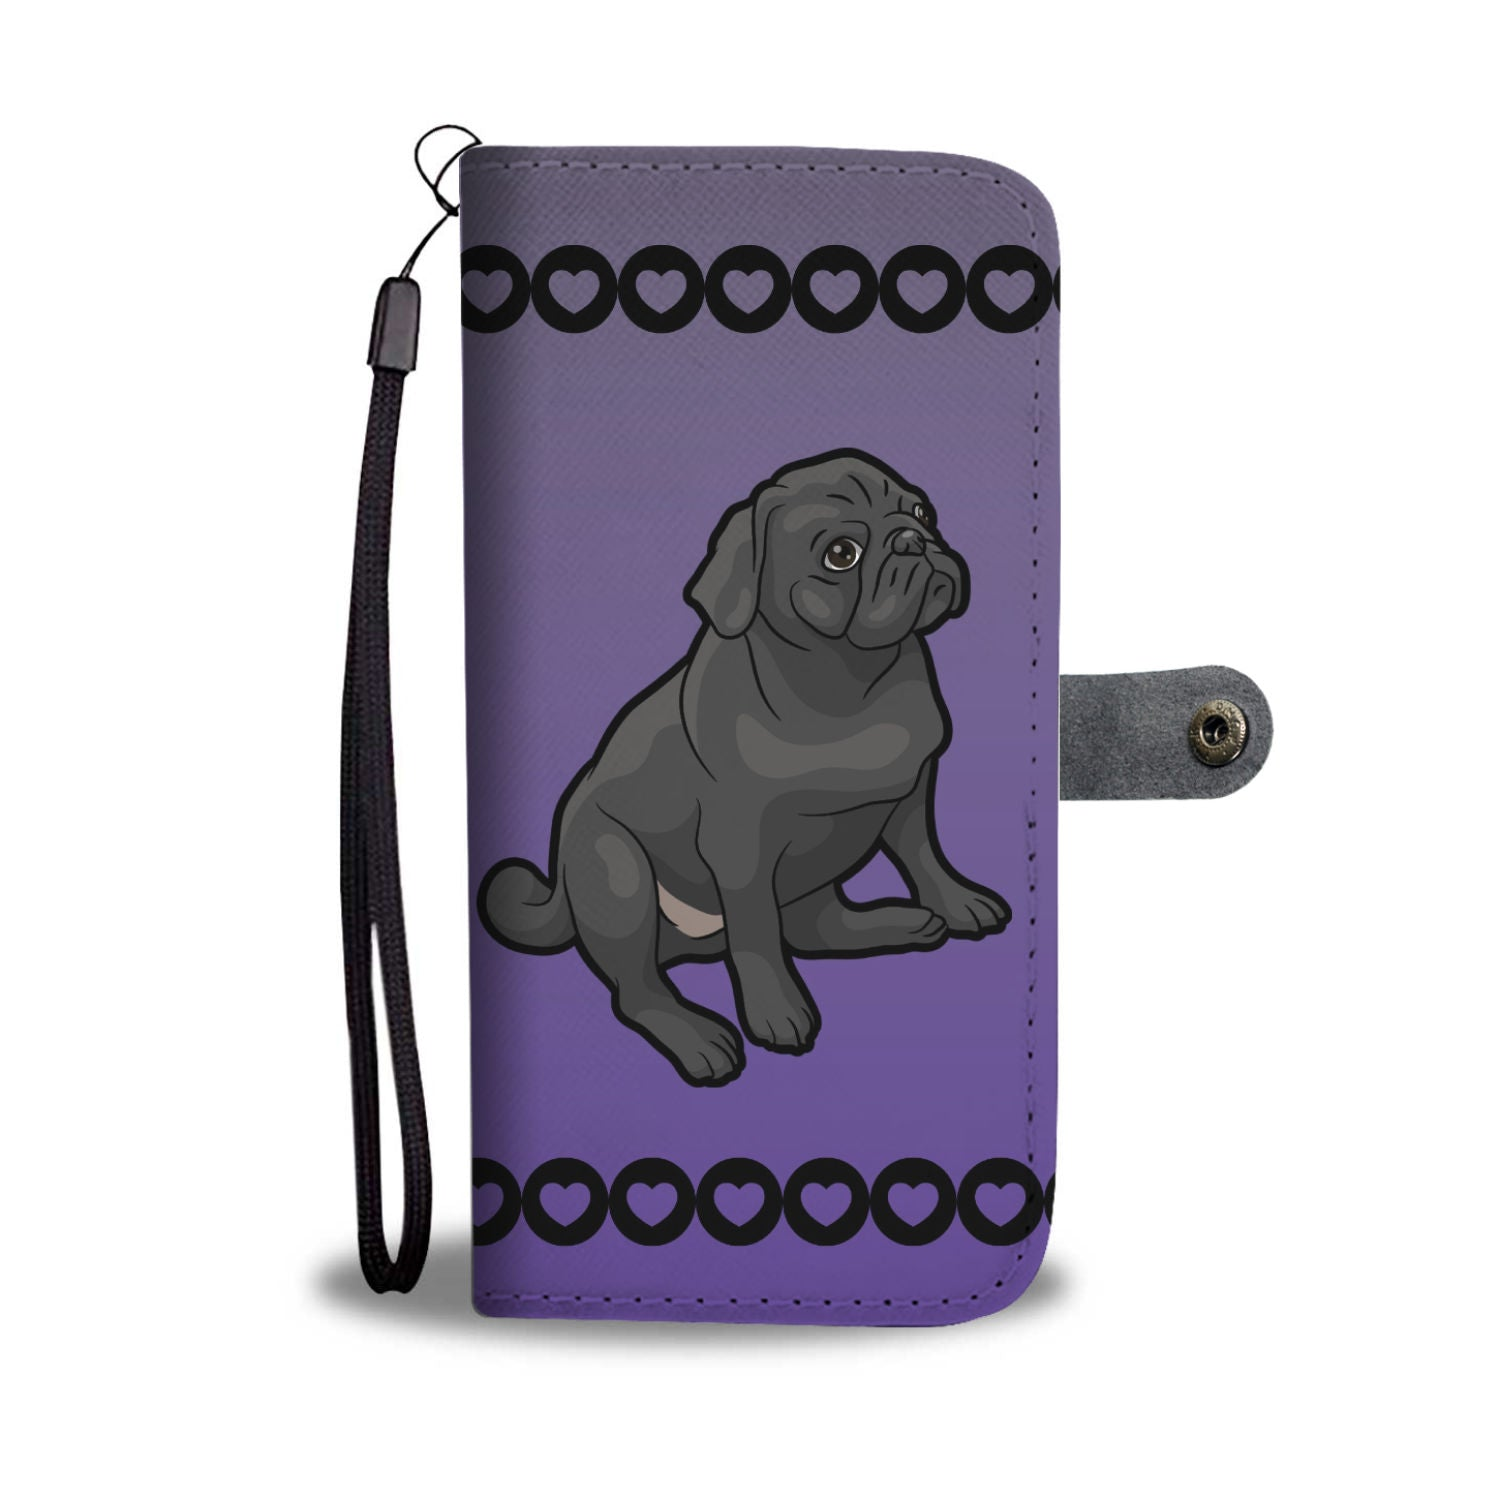 Pug Phone Case Wallet - Cartoon Black Pug